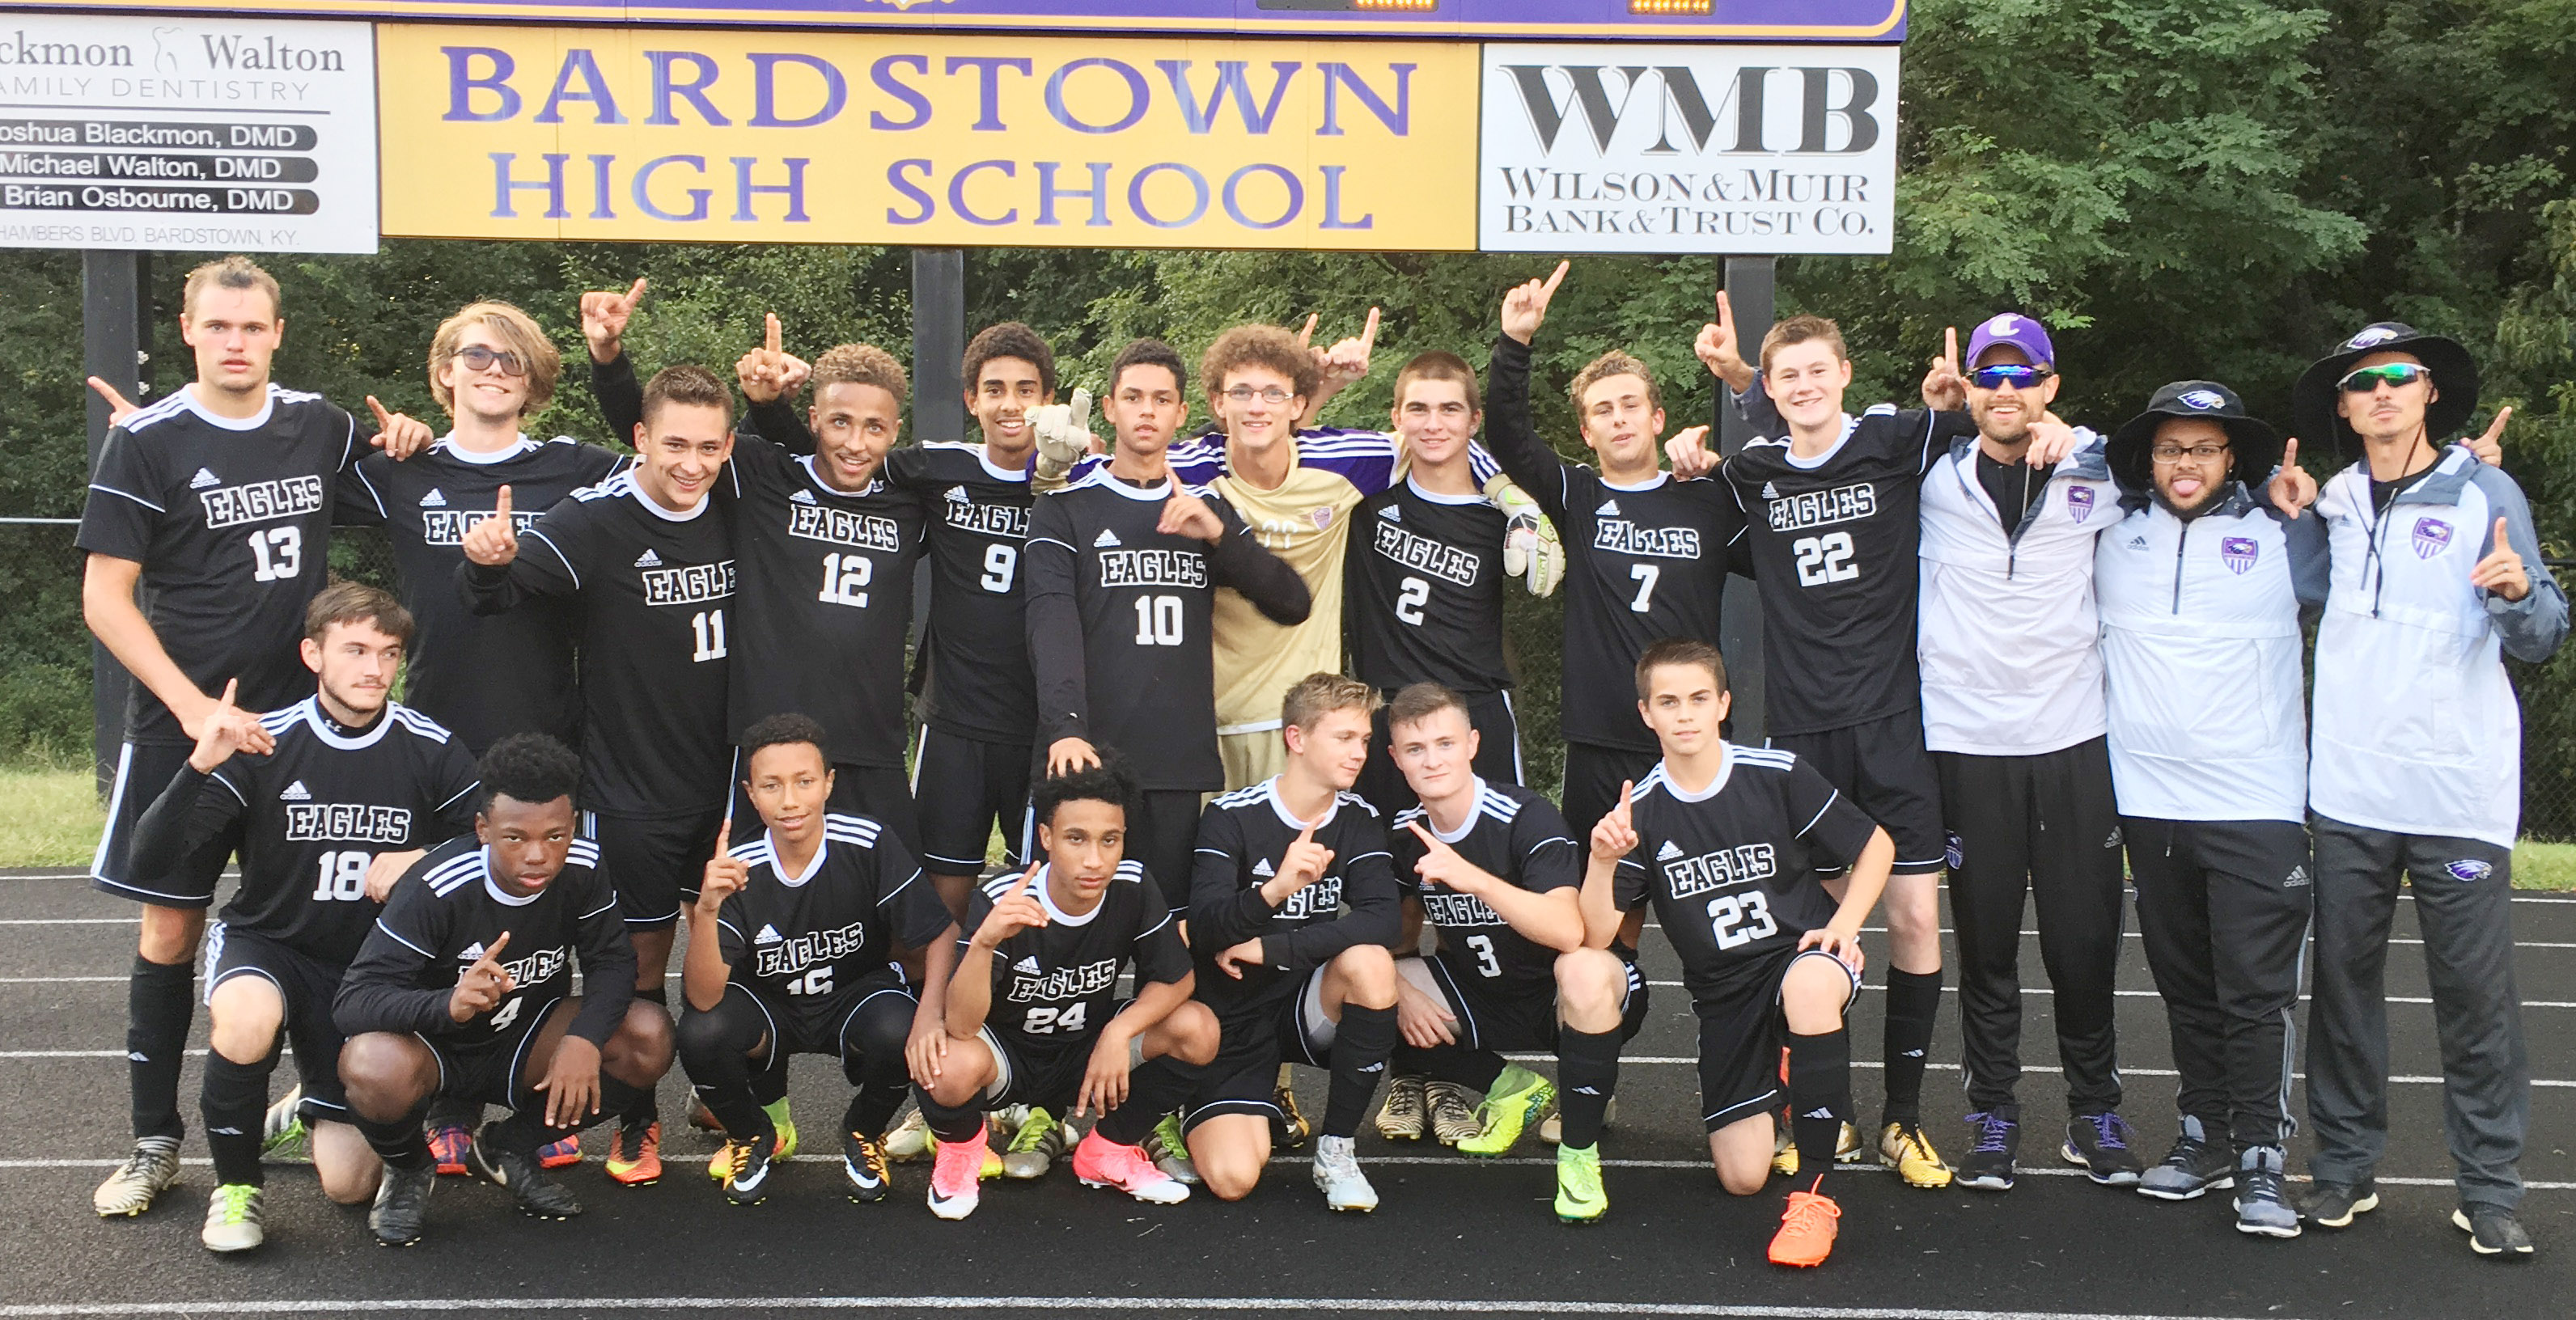 "Campbellsville High School soccer team recently made history by defeating Bardstown to win the All ""A"" fifth region championship. The Eagles are, from left, front, senior Jackson Hunt, freshmen Saevon Buckner and Jastyn Shively, junior Daniel Johnson, freshman Blase Wheatley, senior Bryce Richardson and freshman Clark Kidwell. Back, seniors Logan Cole, Christian Berry, Cody Davis and Ethan Lay, sophomores David Silva, Mikael Vaught and Brennon Wheeler, senior Cass Kidwell, junior Brody Weeks, freshman Tristin Faulkner, assistant coaches Matthew Schmuck and Malique Spaulding and head coach Bradley Harris."